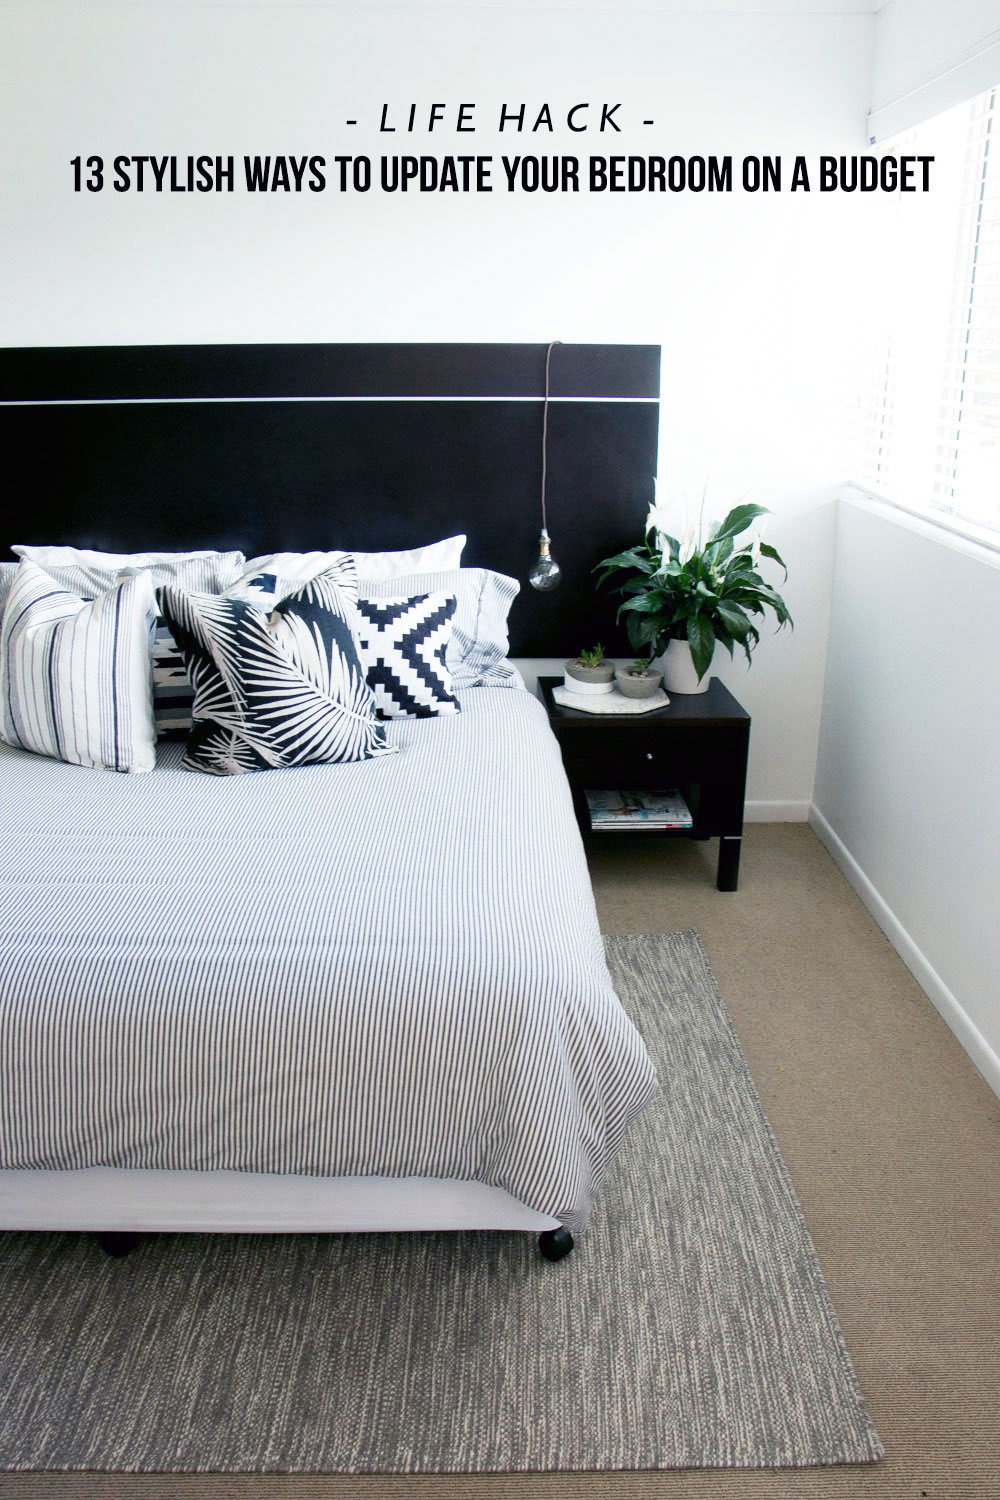 Bedroom Styling Tips On A Budget